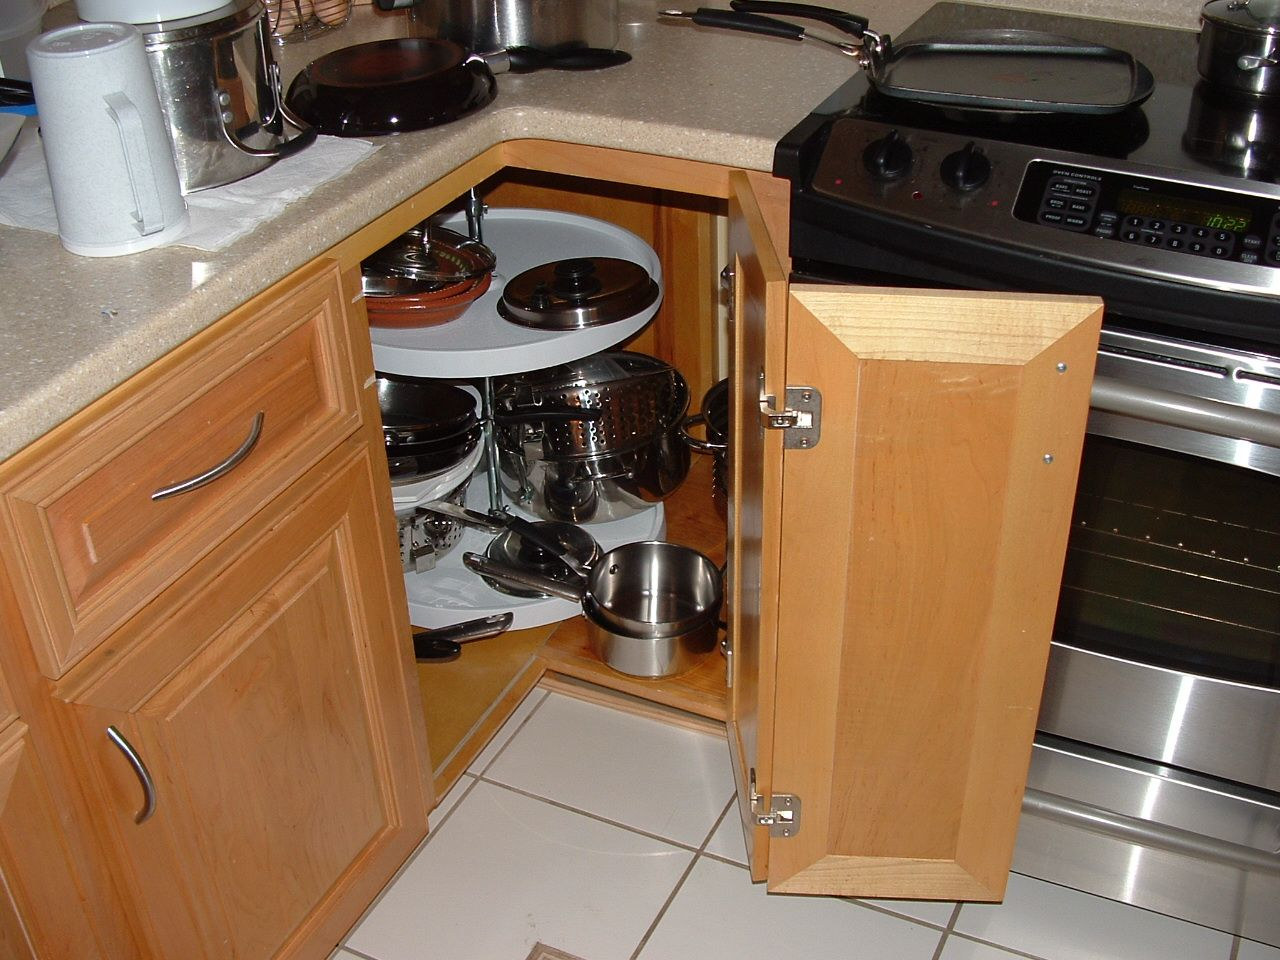 Kitchen Lazy Susan Cabinet Kitchen Cabinets Lazy Susan For The Inside Corners Of Your